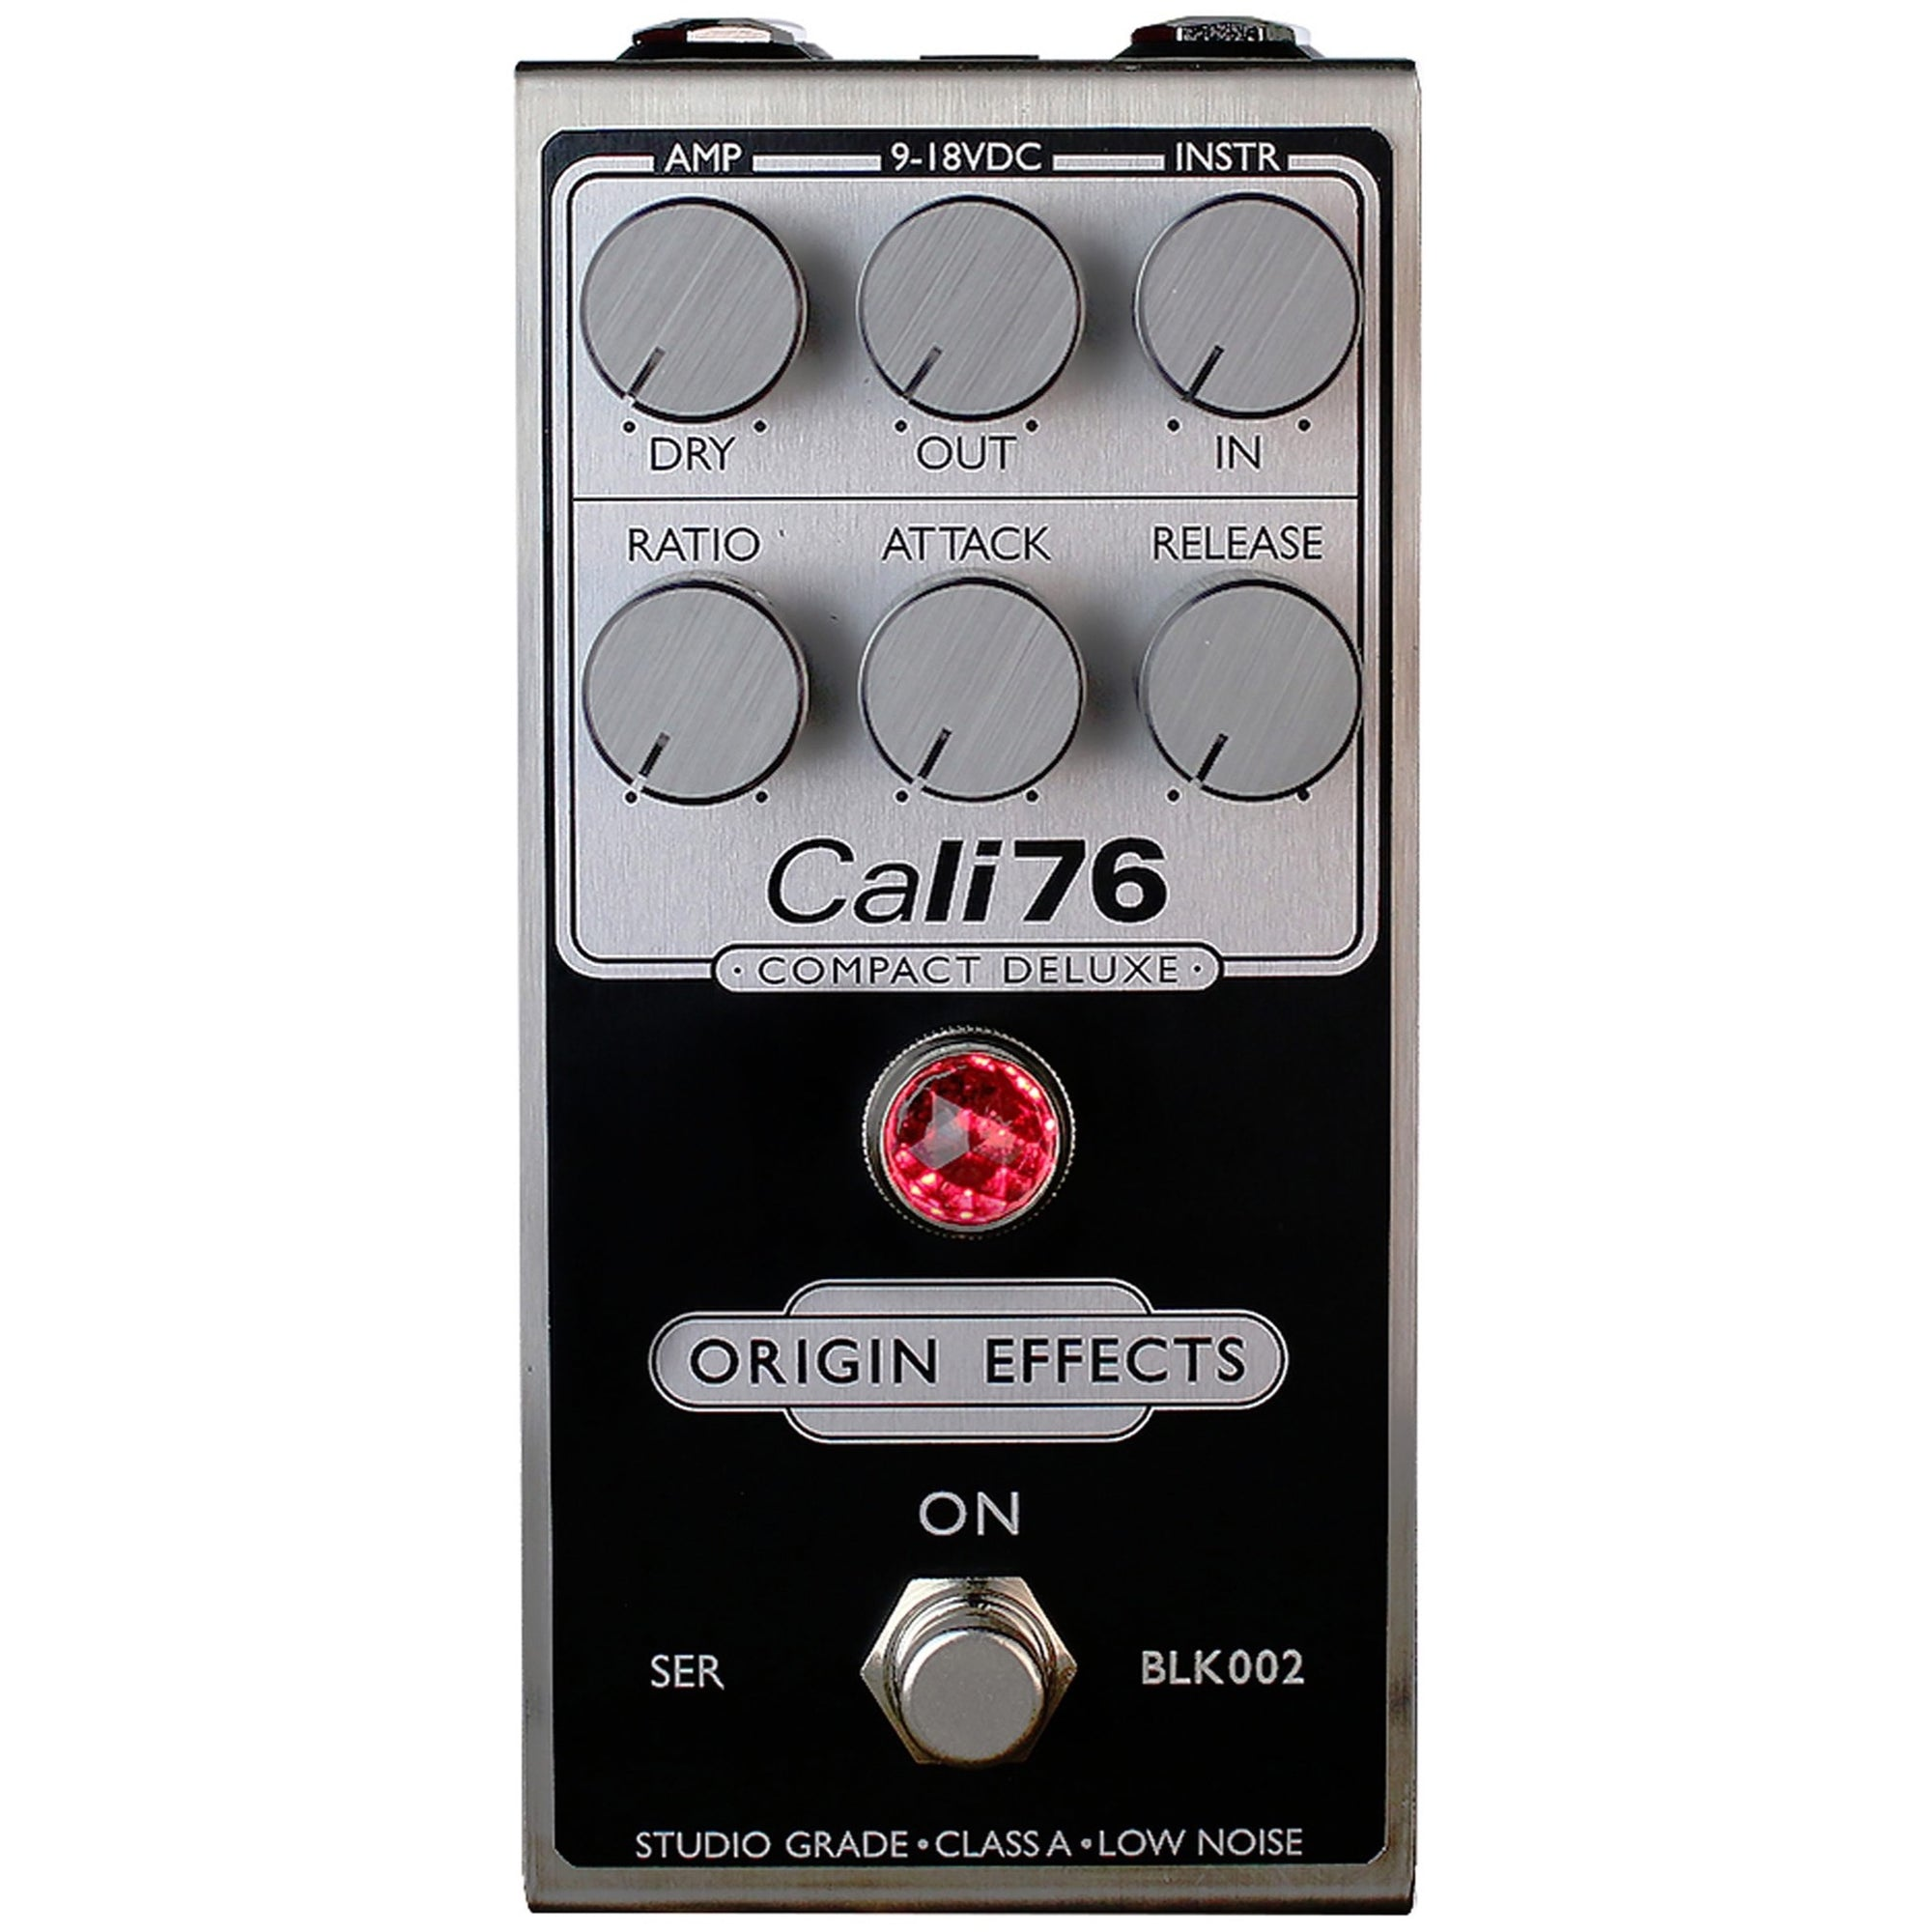 Origin Effects Cali76 Compact Deluxe Compressor Pedal, Black Model